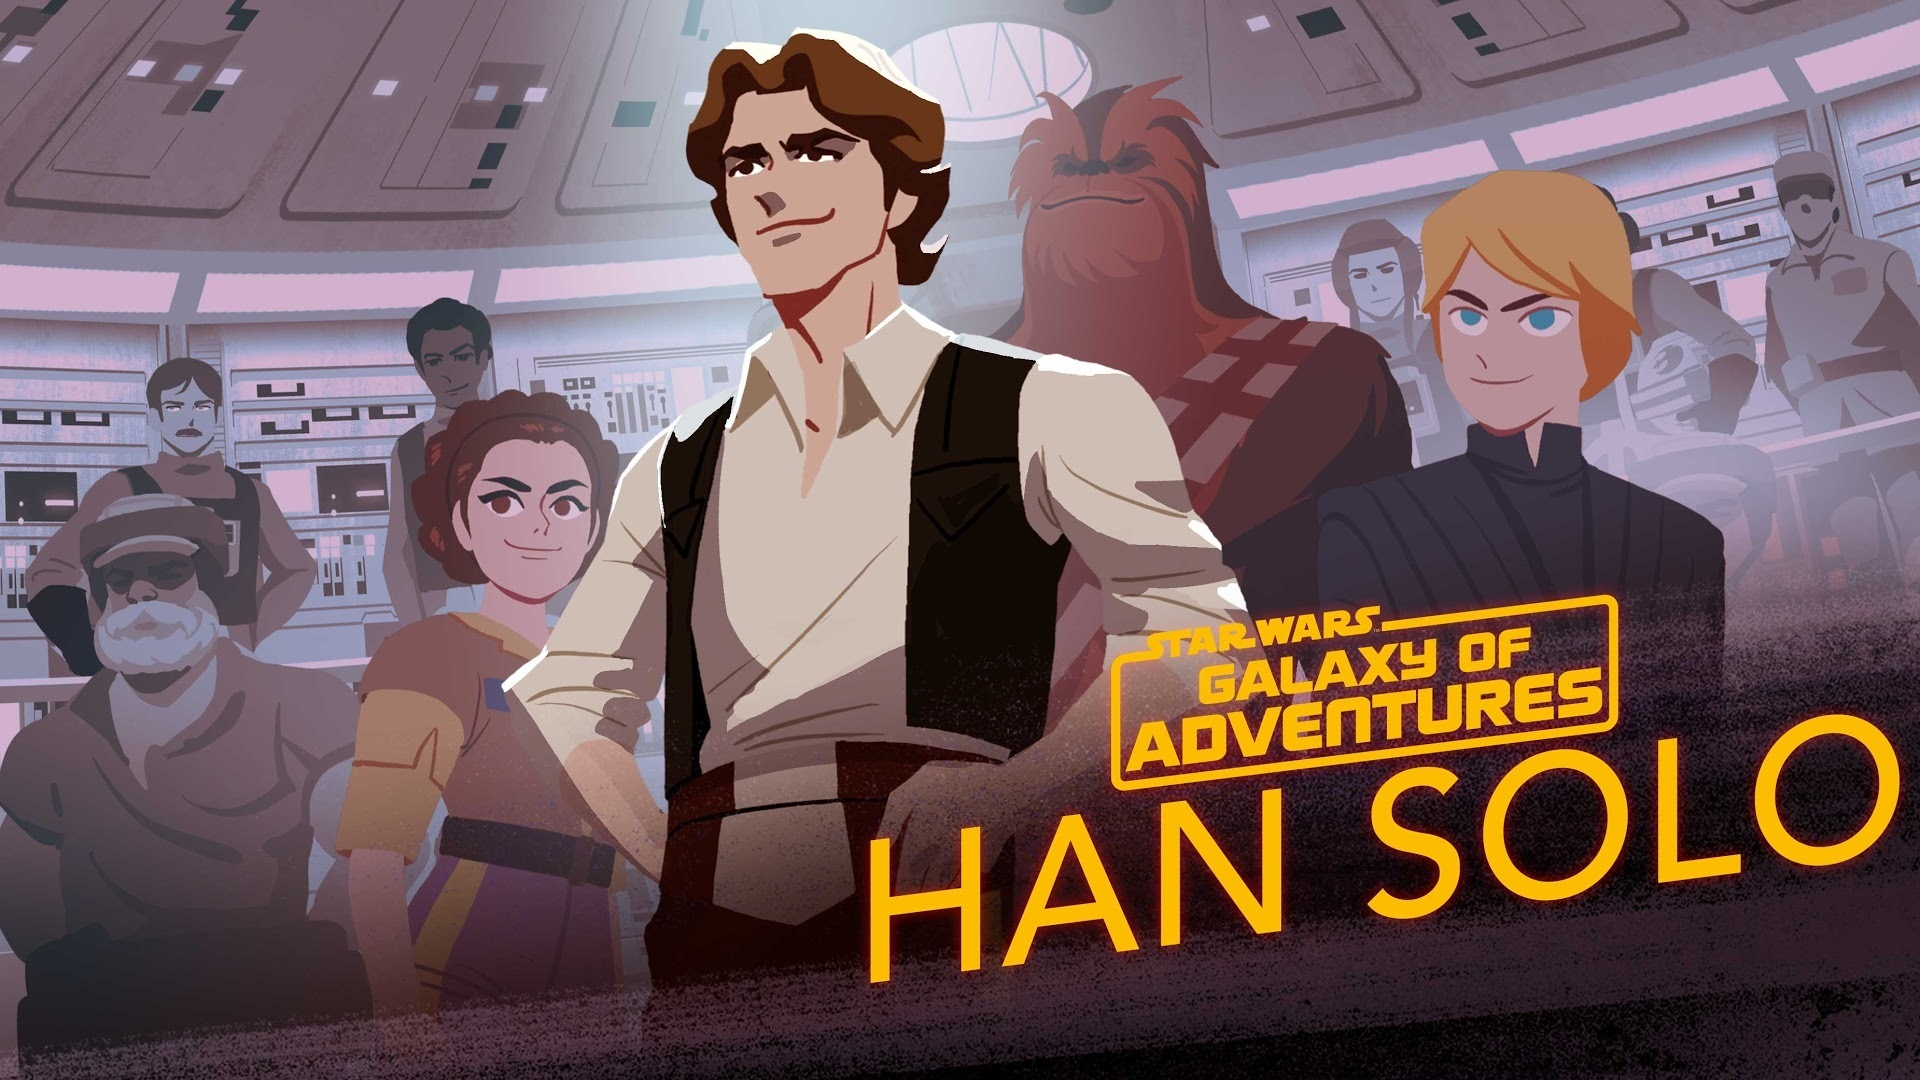 Han Solo - From Smuggler to General | Star Wars Galaxy of Adventures